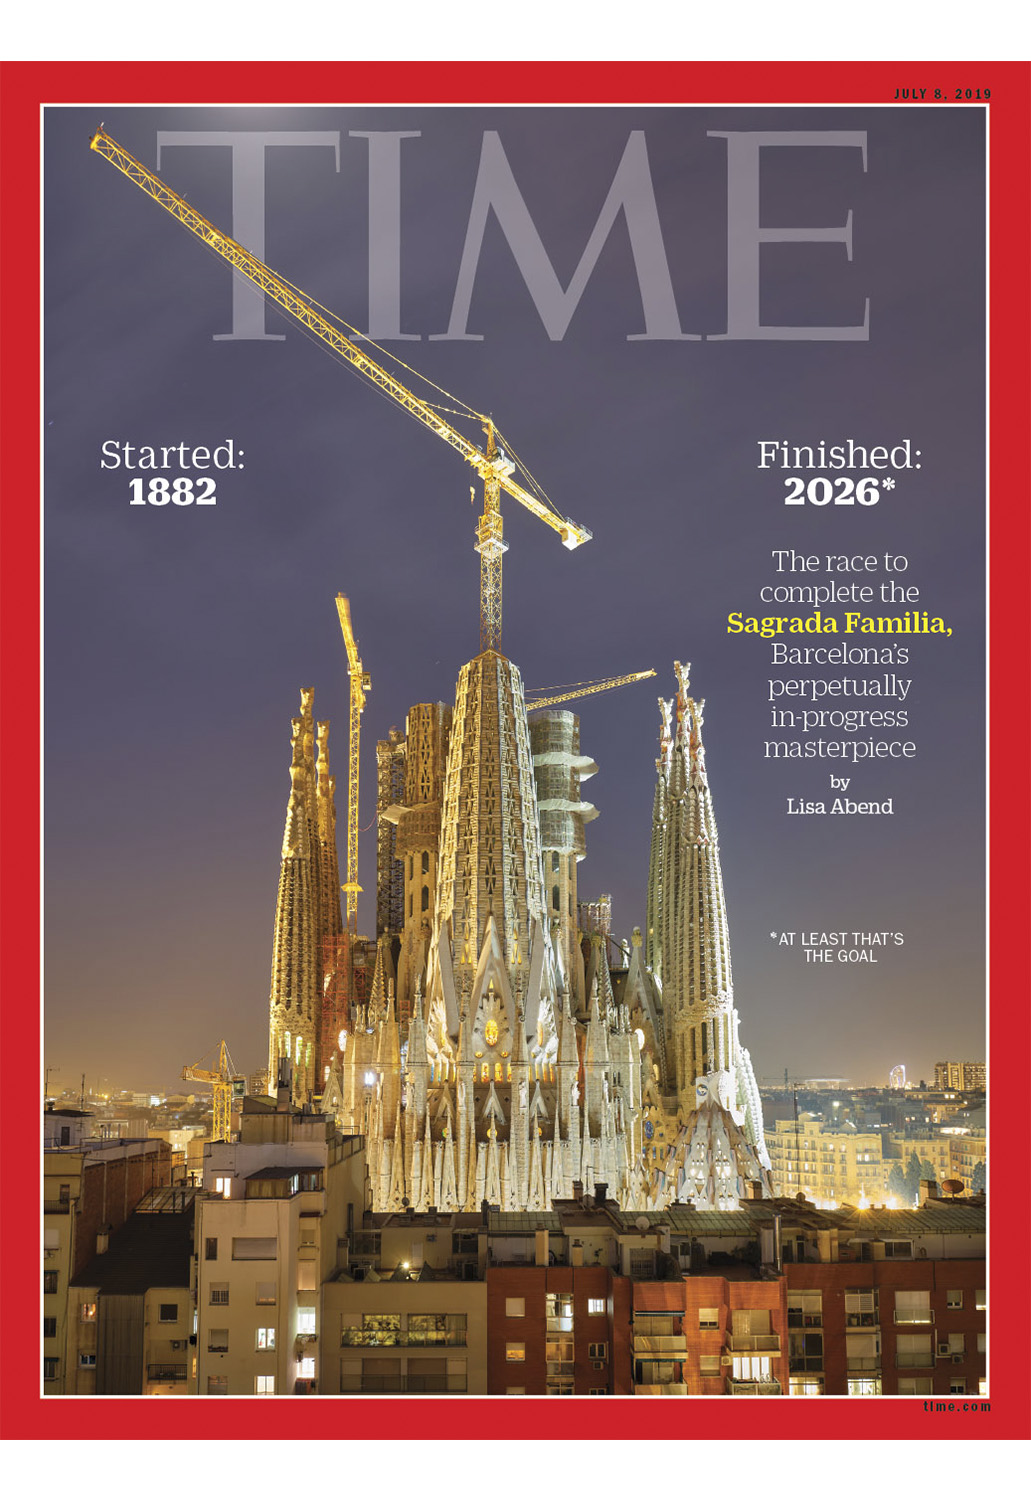 TIME - GAUDÍ'S GREAT TEMPLE   The construction site of Sagrada Familia in Barcelona has been tirelessly at work since 1882. More than a century later, completion seems close.